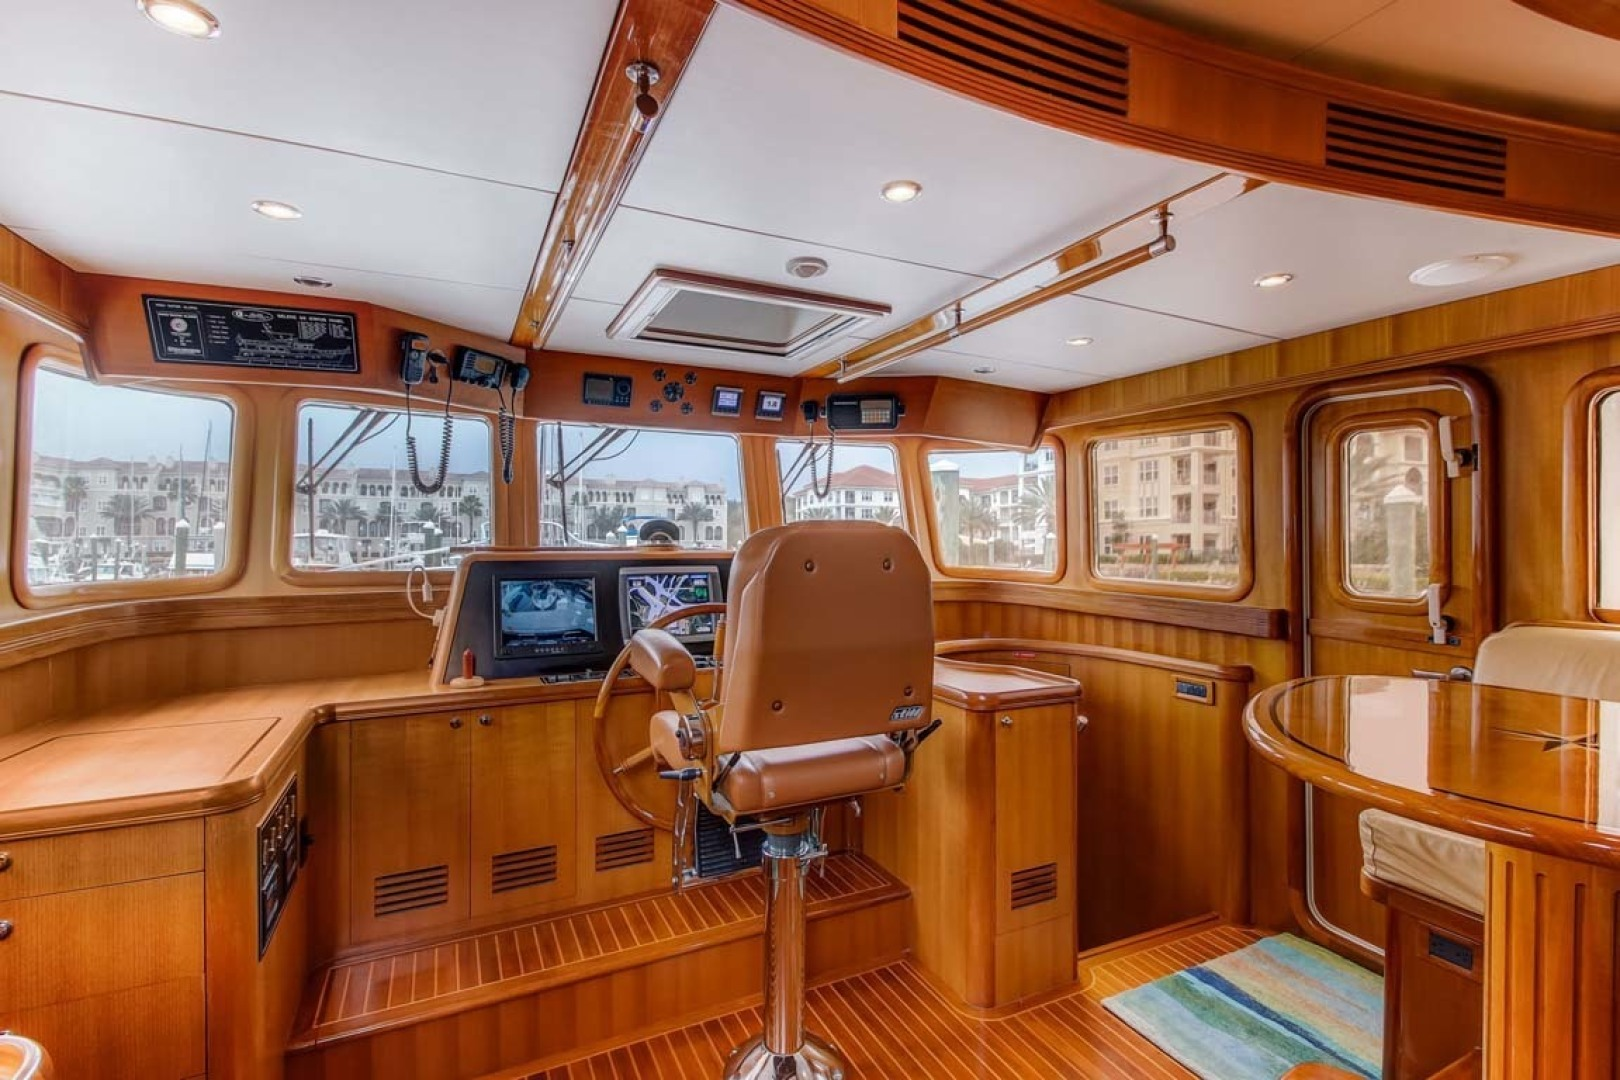 Selene-60 Ocean Trawler 2010-Gypsy Magic Jacksonville-Florida-United States-Helm station-1346725 | Thumbnail